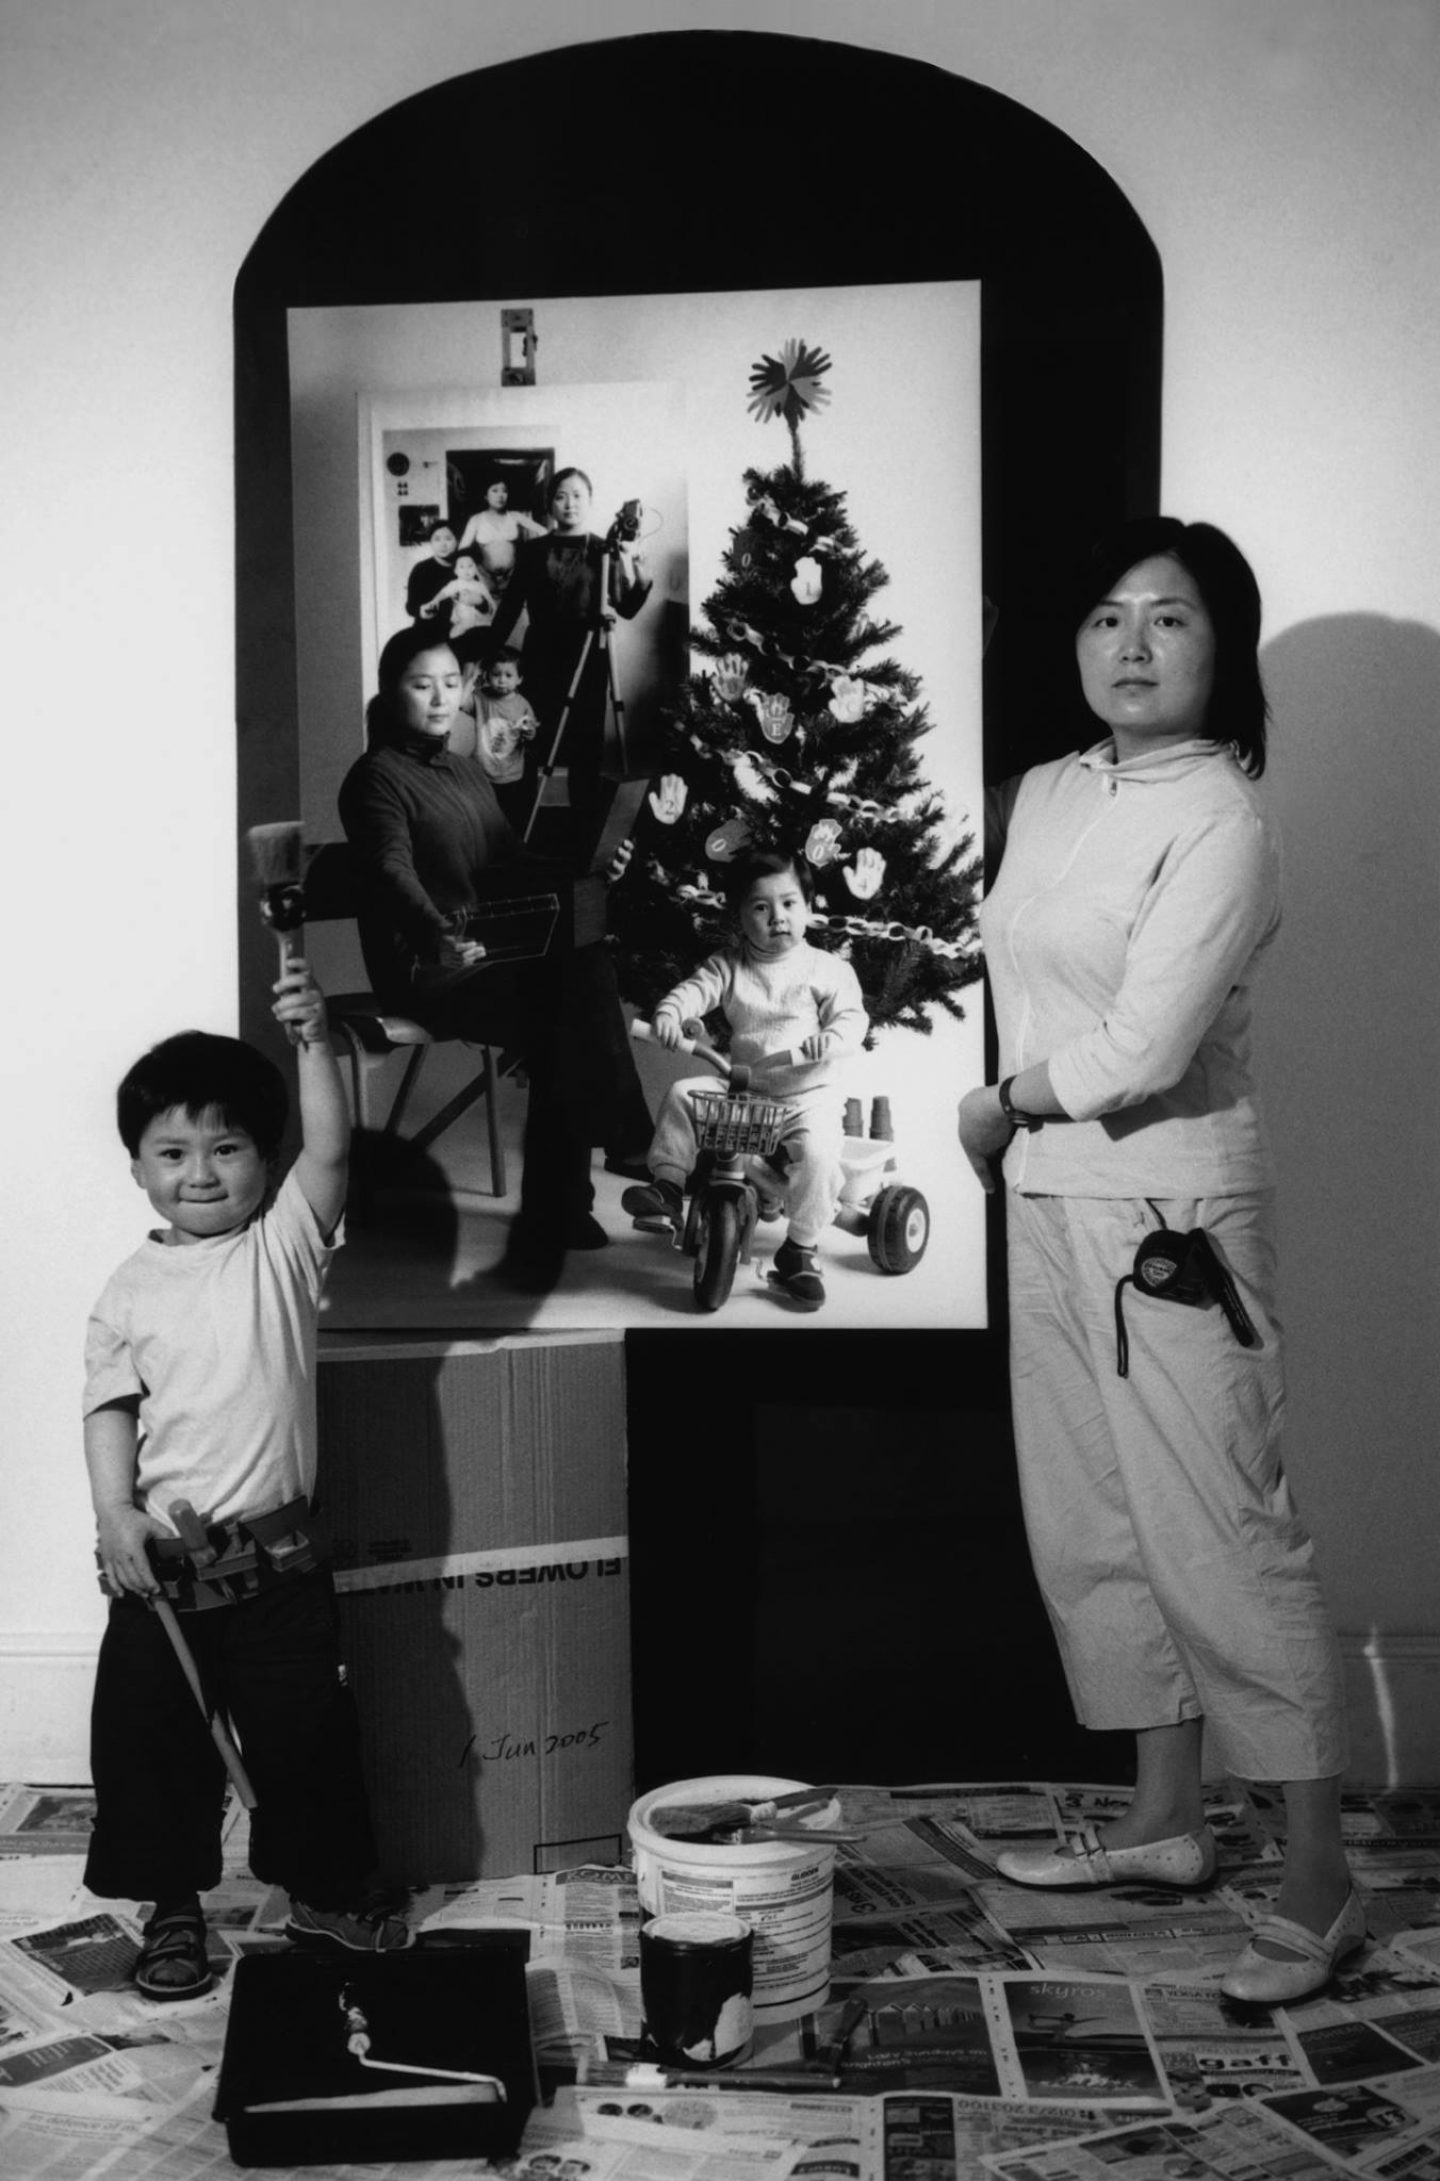 IGNANT-Photography-Annie-Wang-The-Mother-As-Creator-17